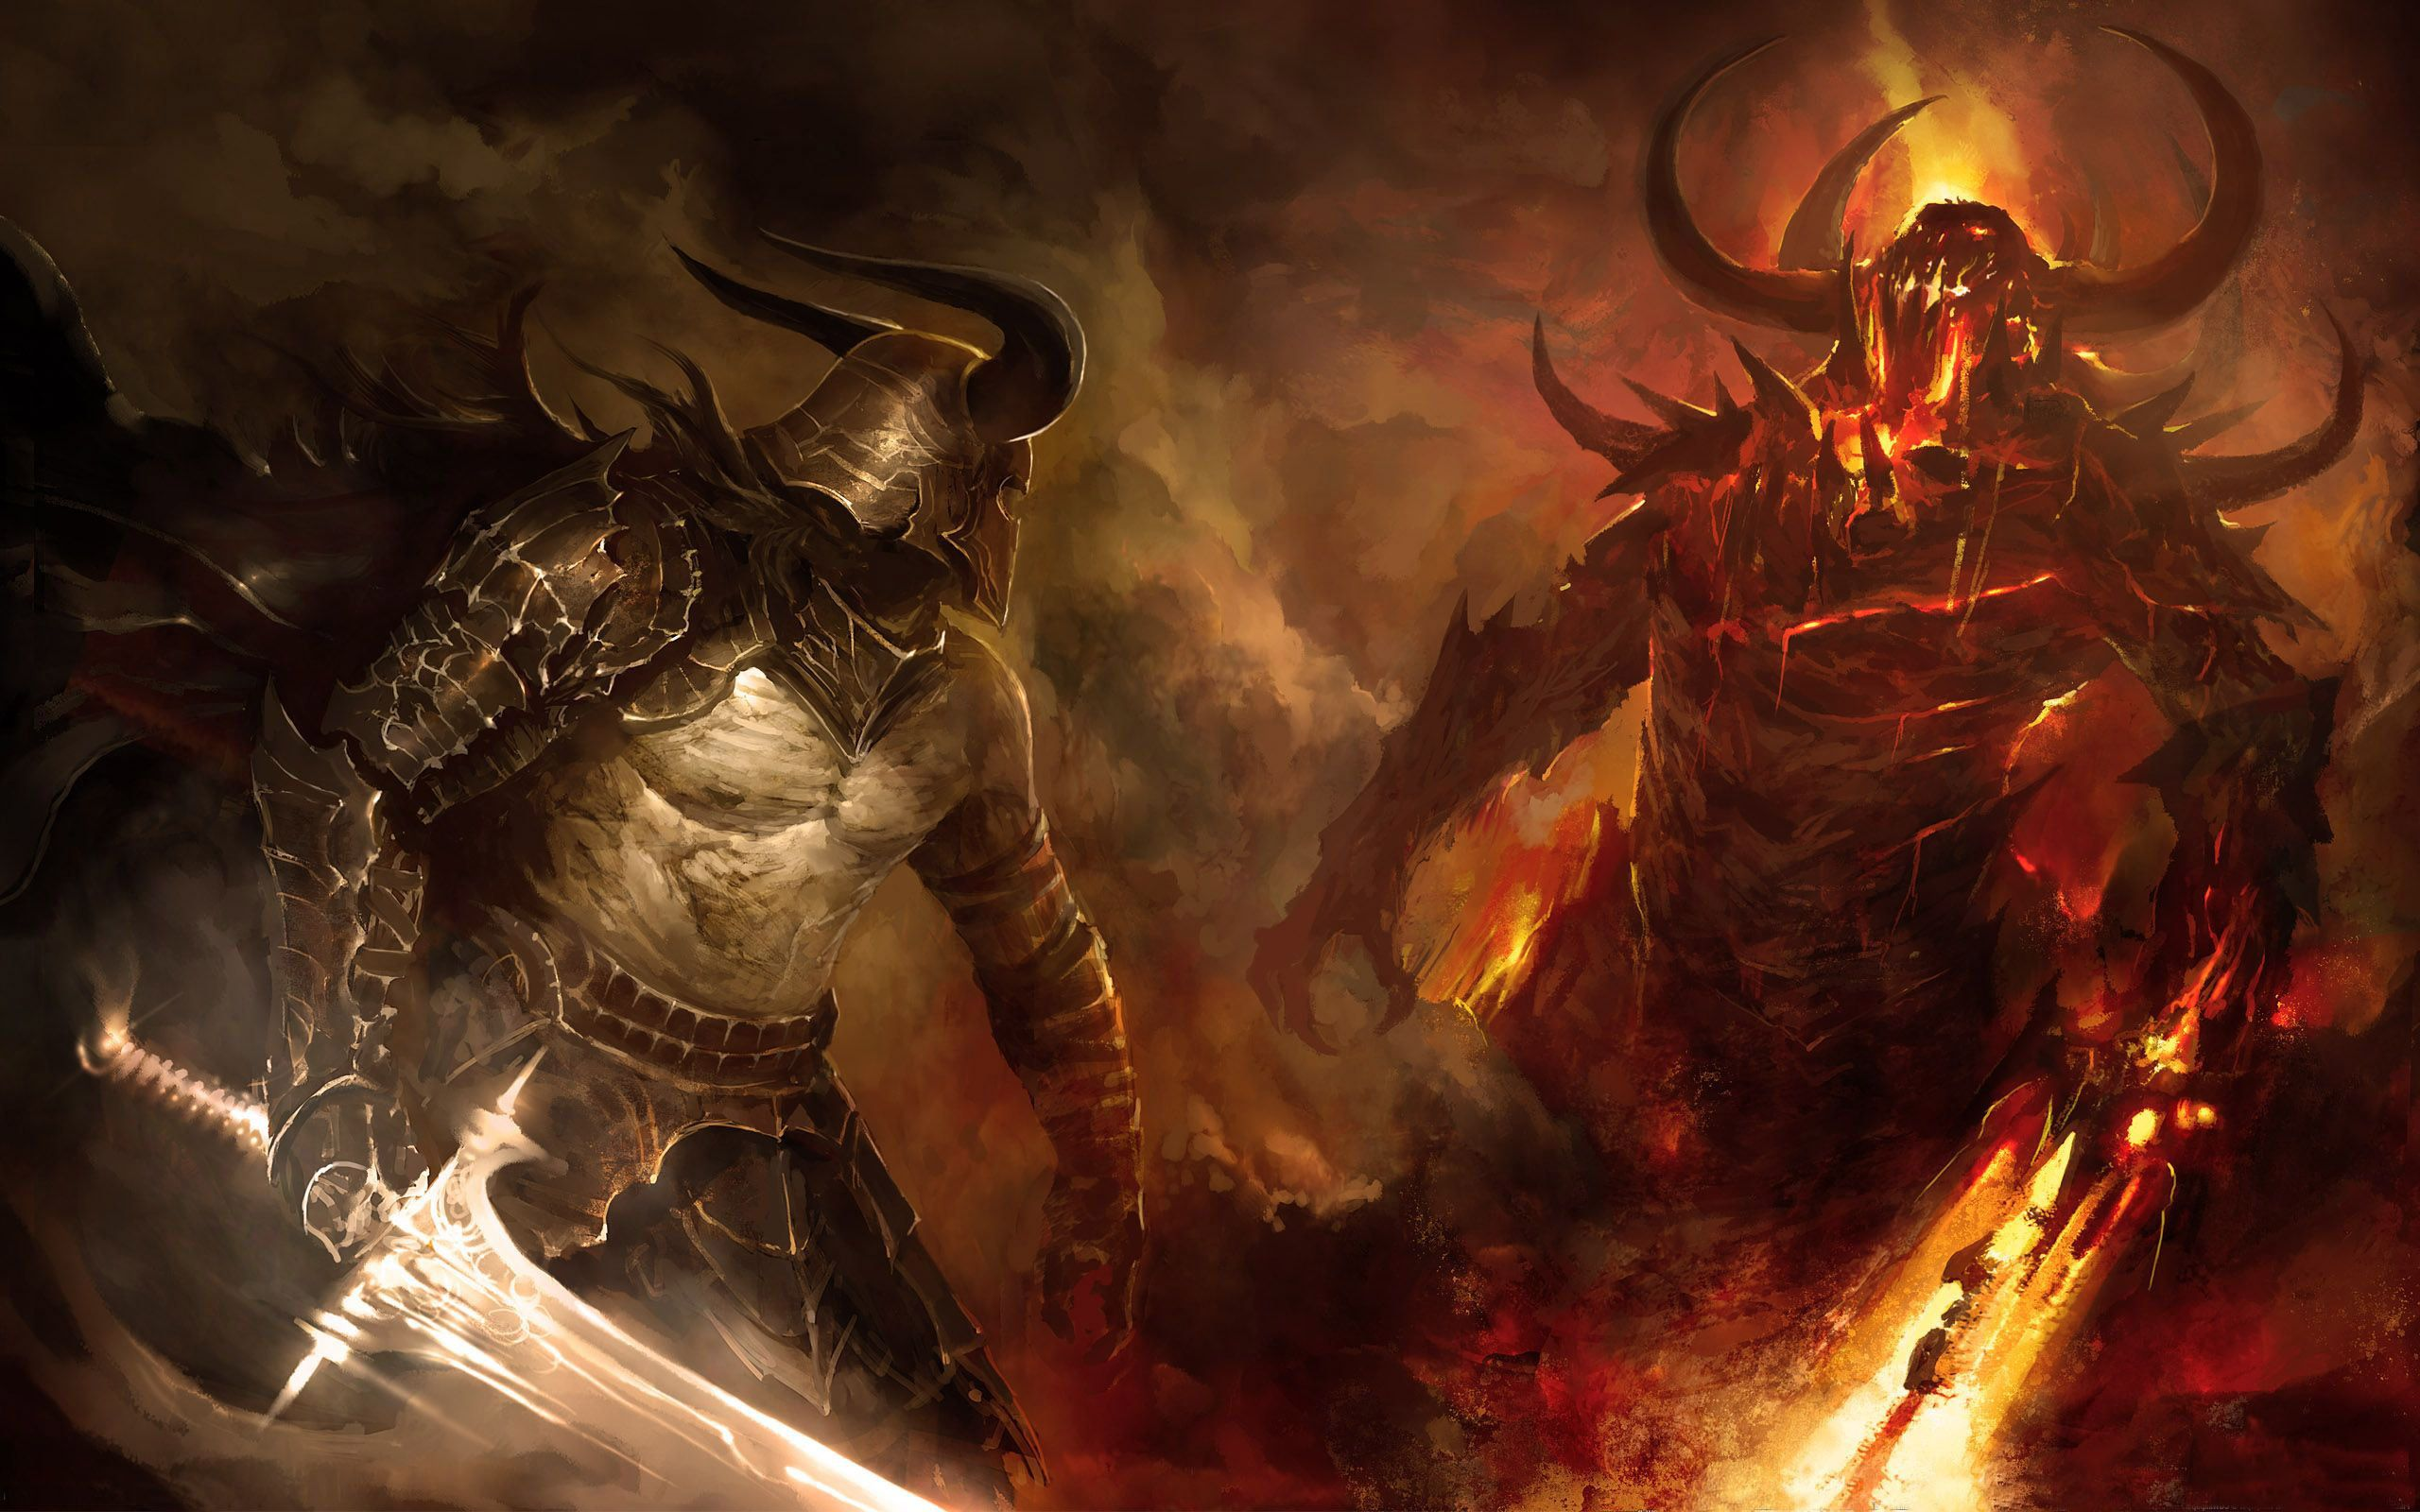 demons vs angels - Google Search | Good Vs Evil | Fantasy